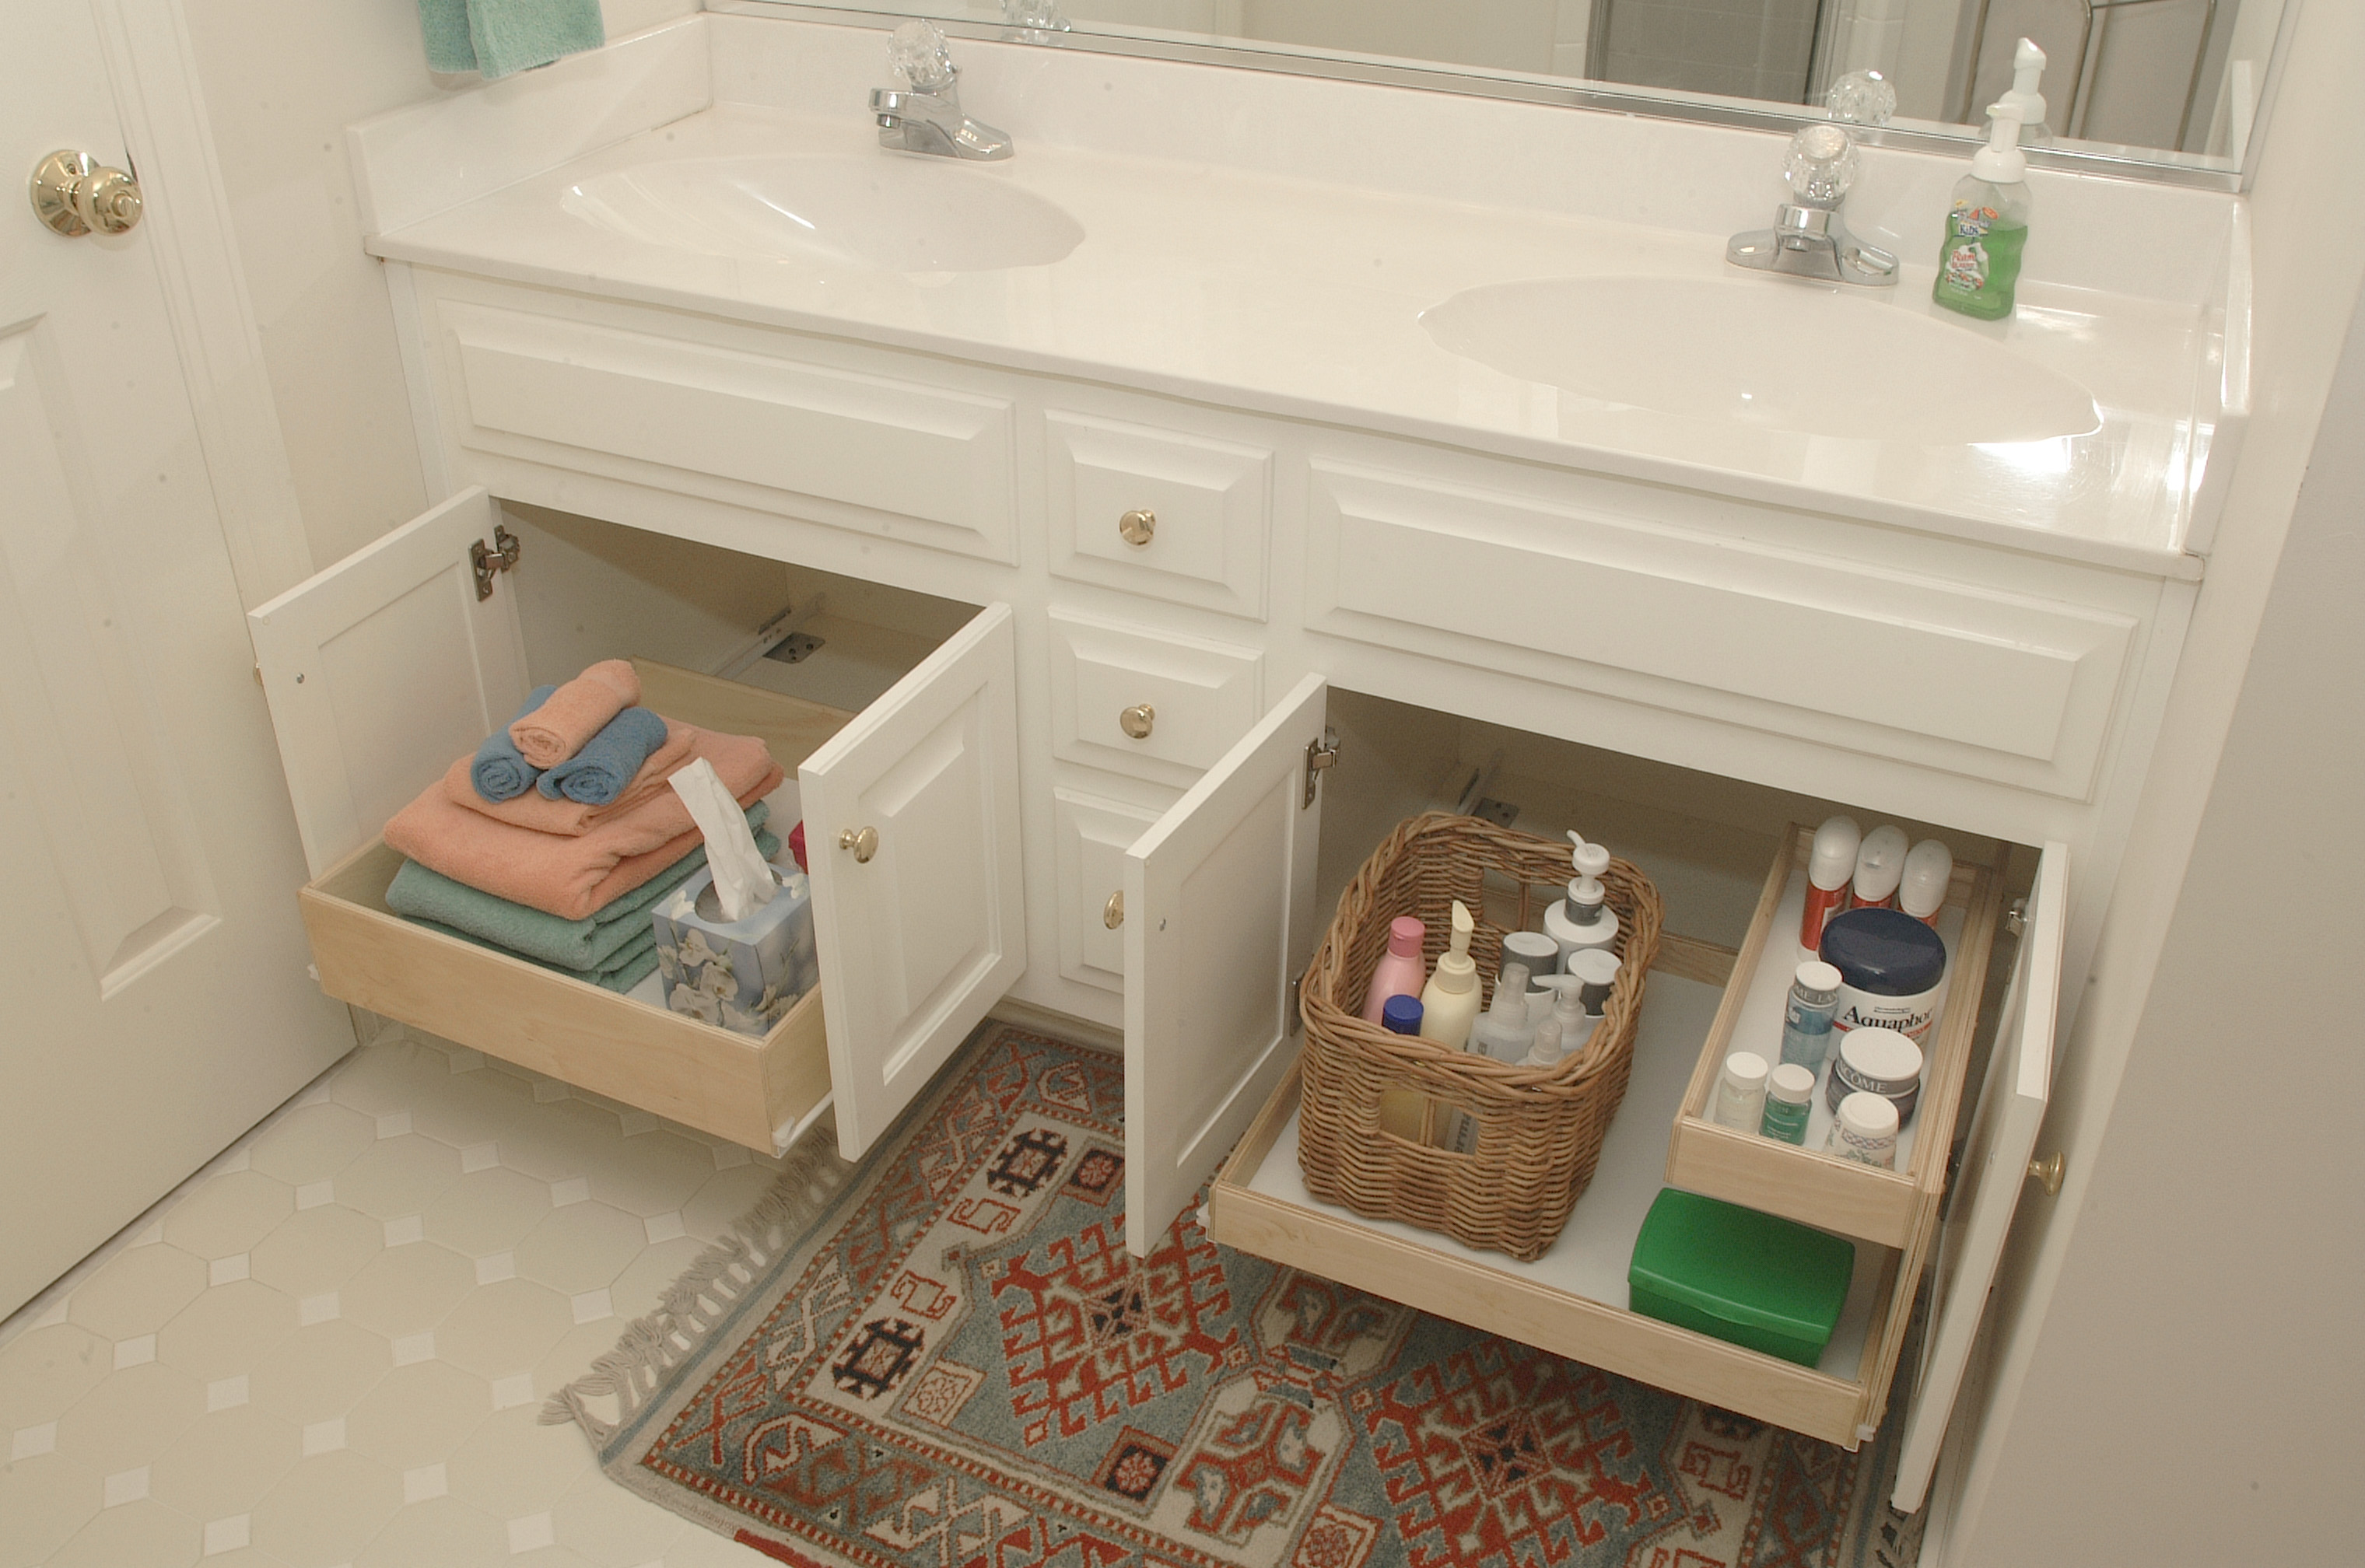 ShelfGenie | Lighten Up! on pull out too quickly, pull out cabinet table, pull out kitchen organizers, pull out corner, pull out refrigerators, pull out keyboard shelves, pull out kitchen cabinets, pull out book shelves, roll out pantry shelves, pull out kitchen shelves, pull out medicine cabinet, pull out garage shelves, pull out pot and pan organizer, pull out keyboard trays, pull out closet hanger, kitchen sliding shelves, kitchen cabinets with roll out shelves, pull out floating shelves, pull out cabinet closet, pull out spice cabinet lowe's,